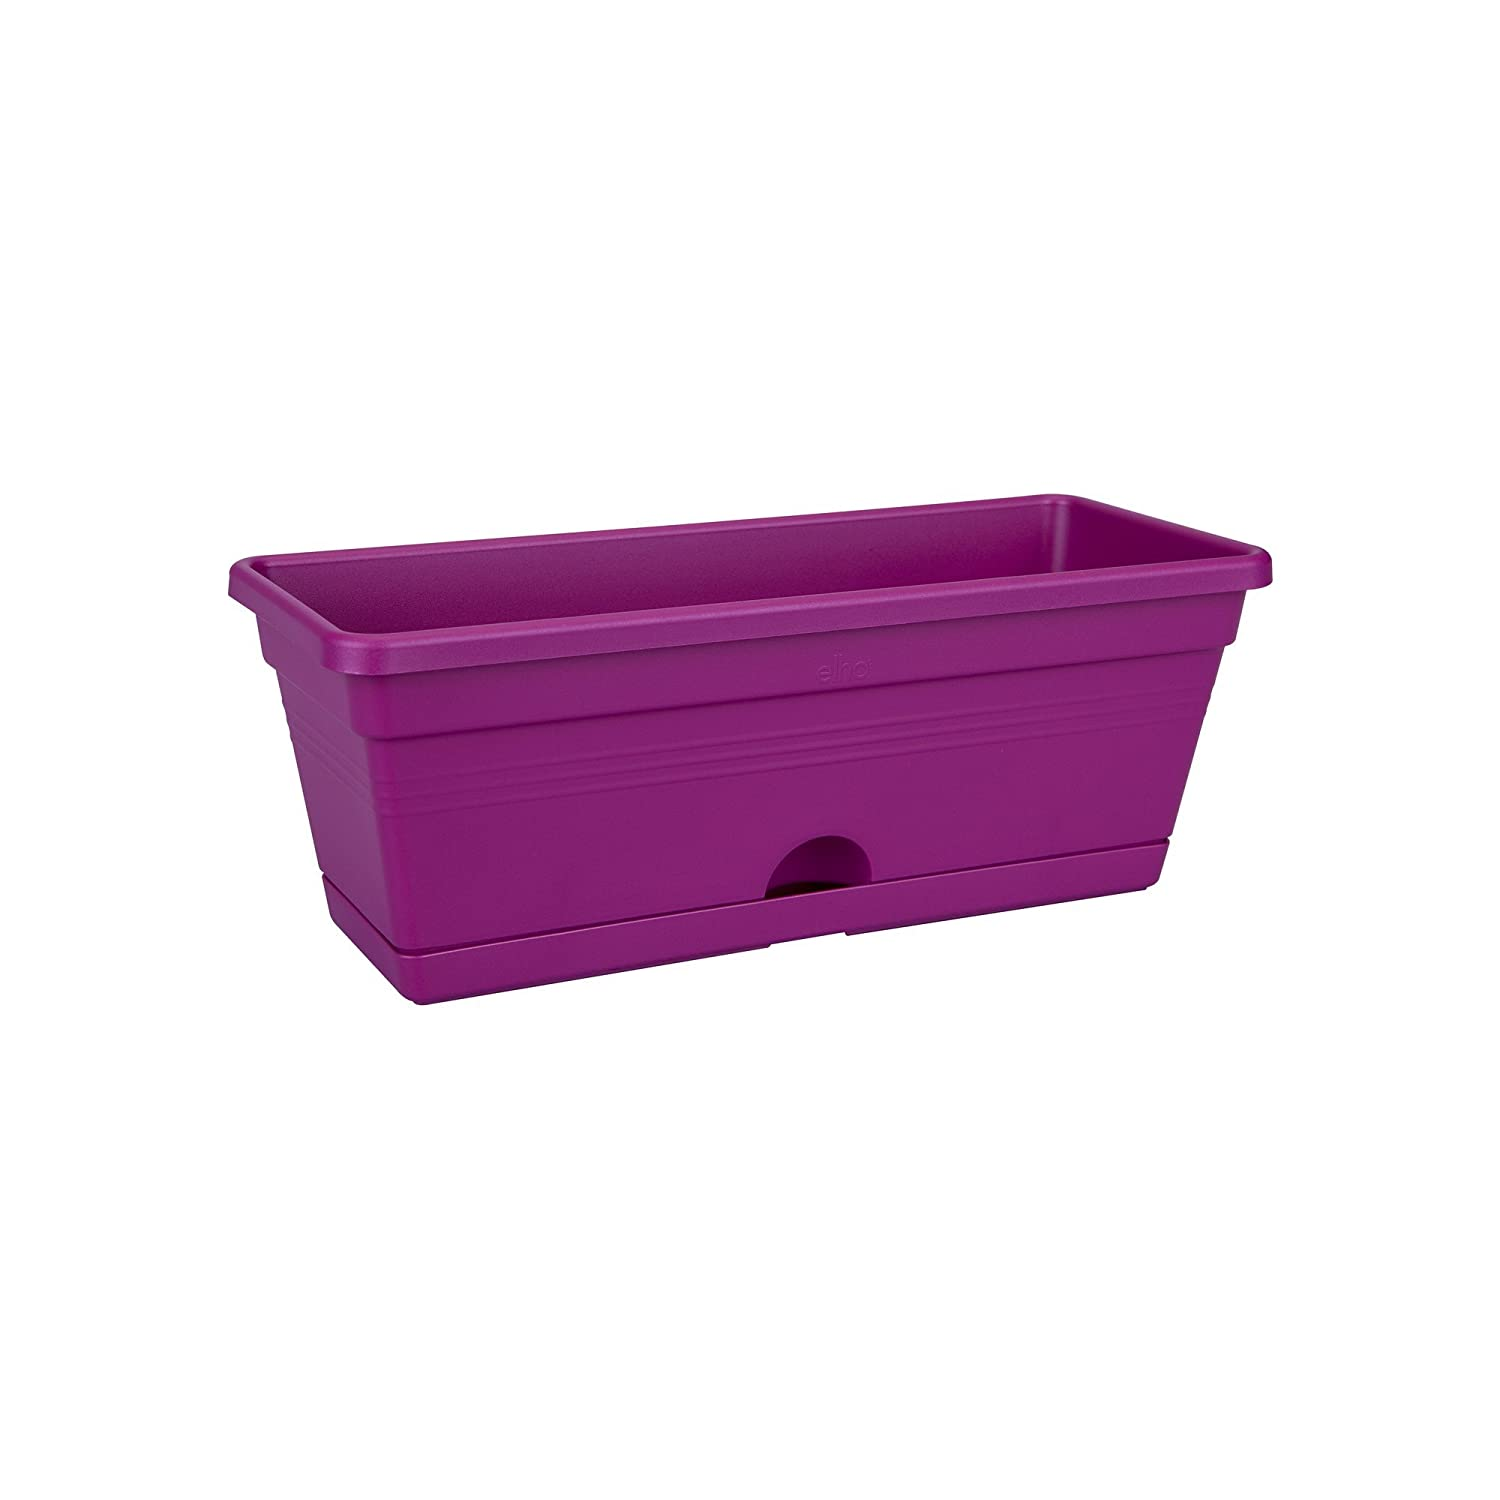 Elho 6821162923500 30 cm Green Basics Mini Balcony Trough - Cherry Red